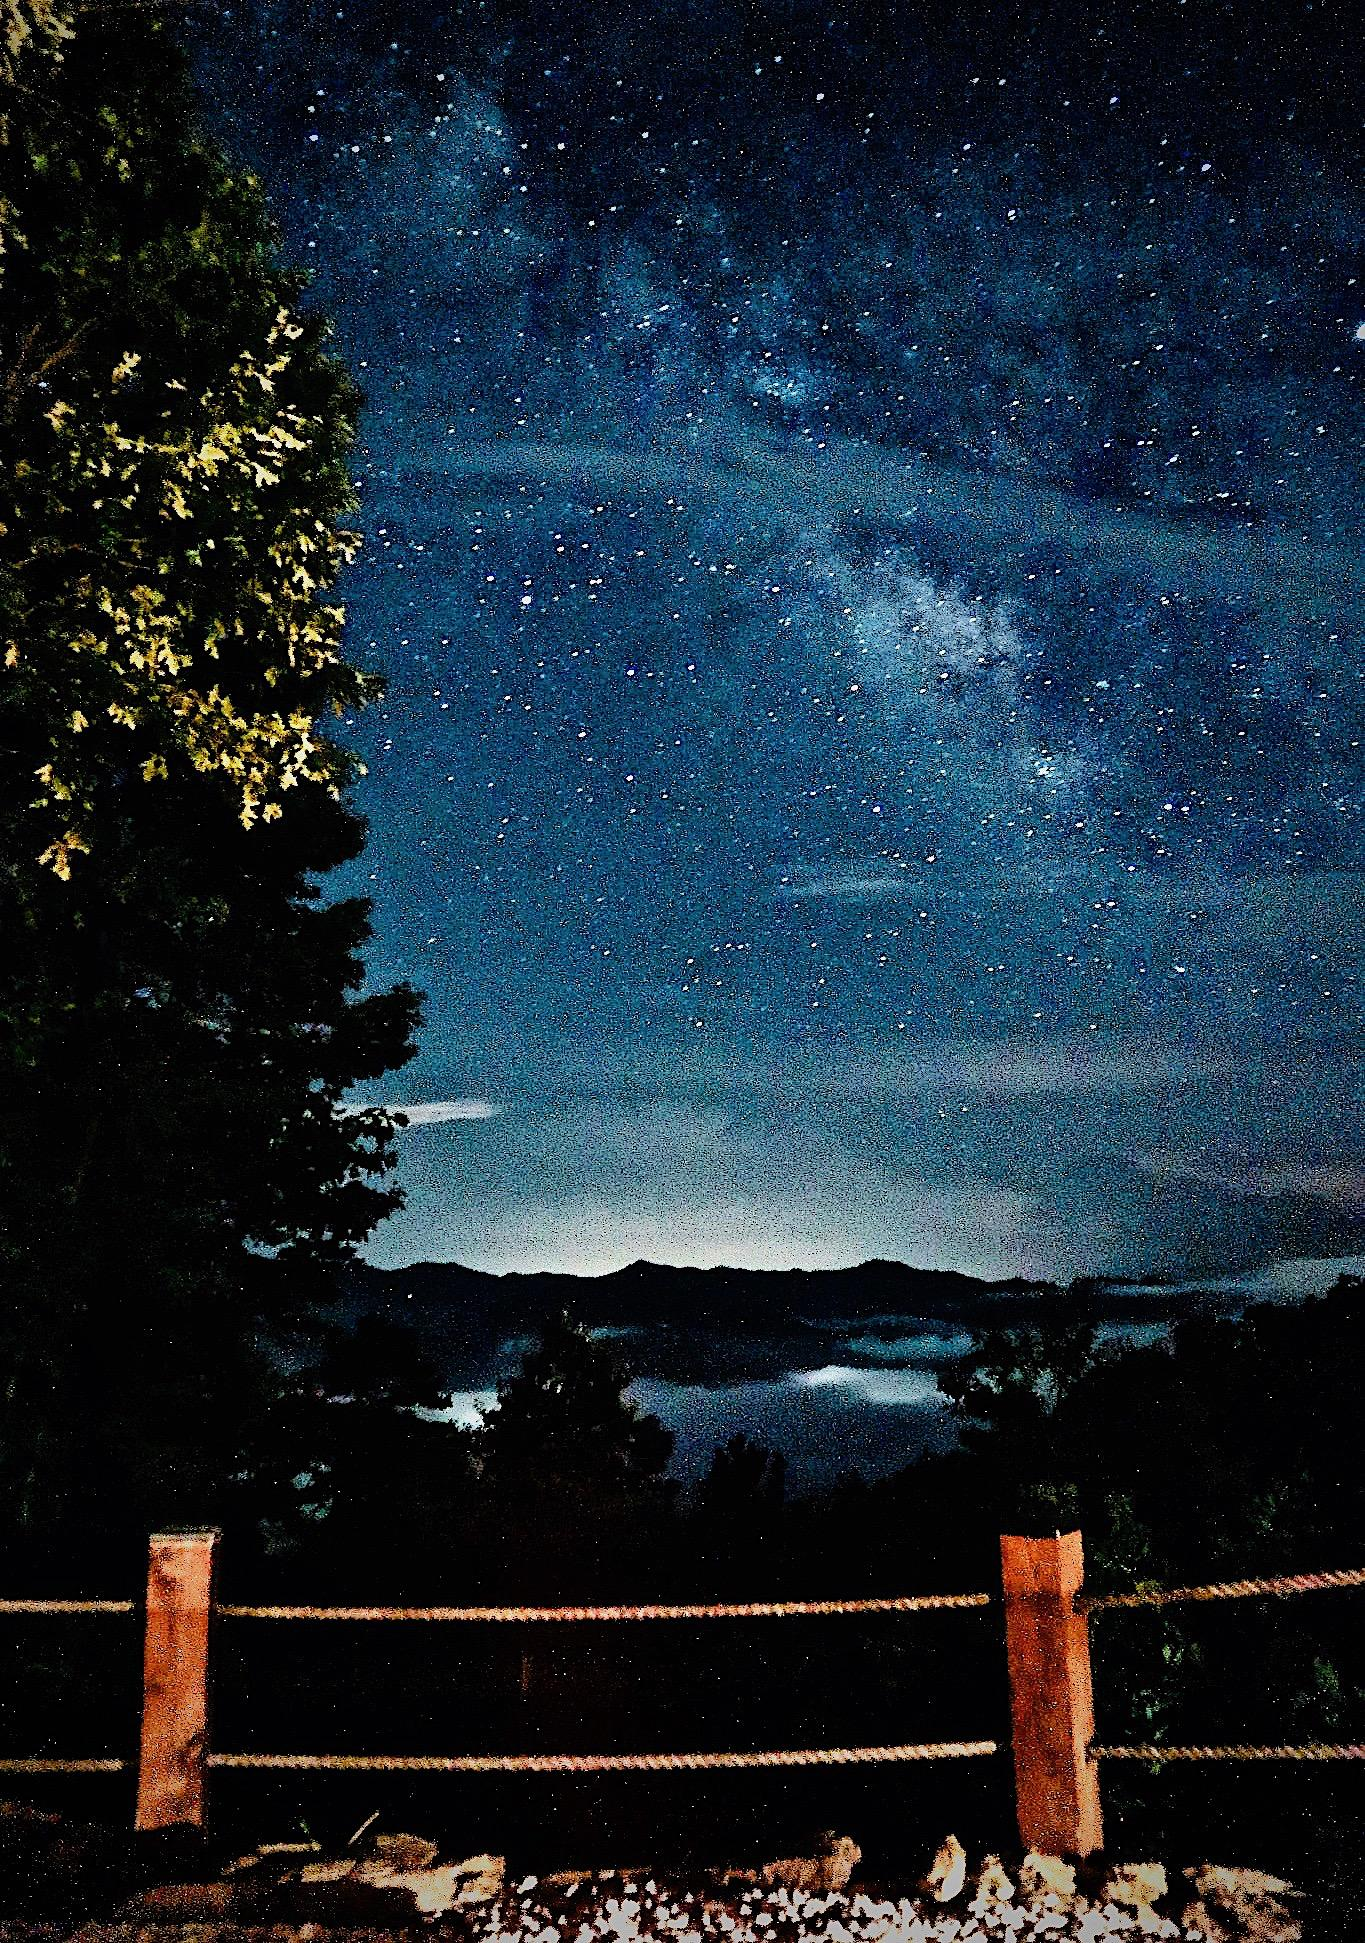 Starry Sky (Viewed from the Fire Pit and Hot Tub Deck)